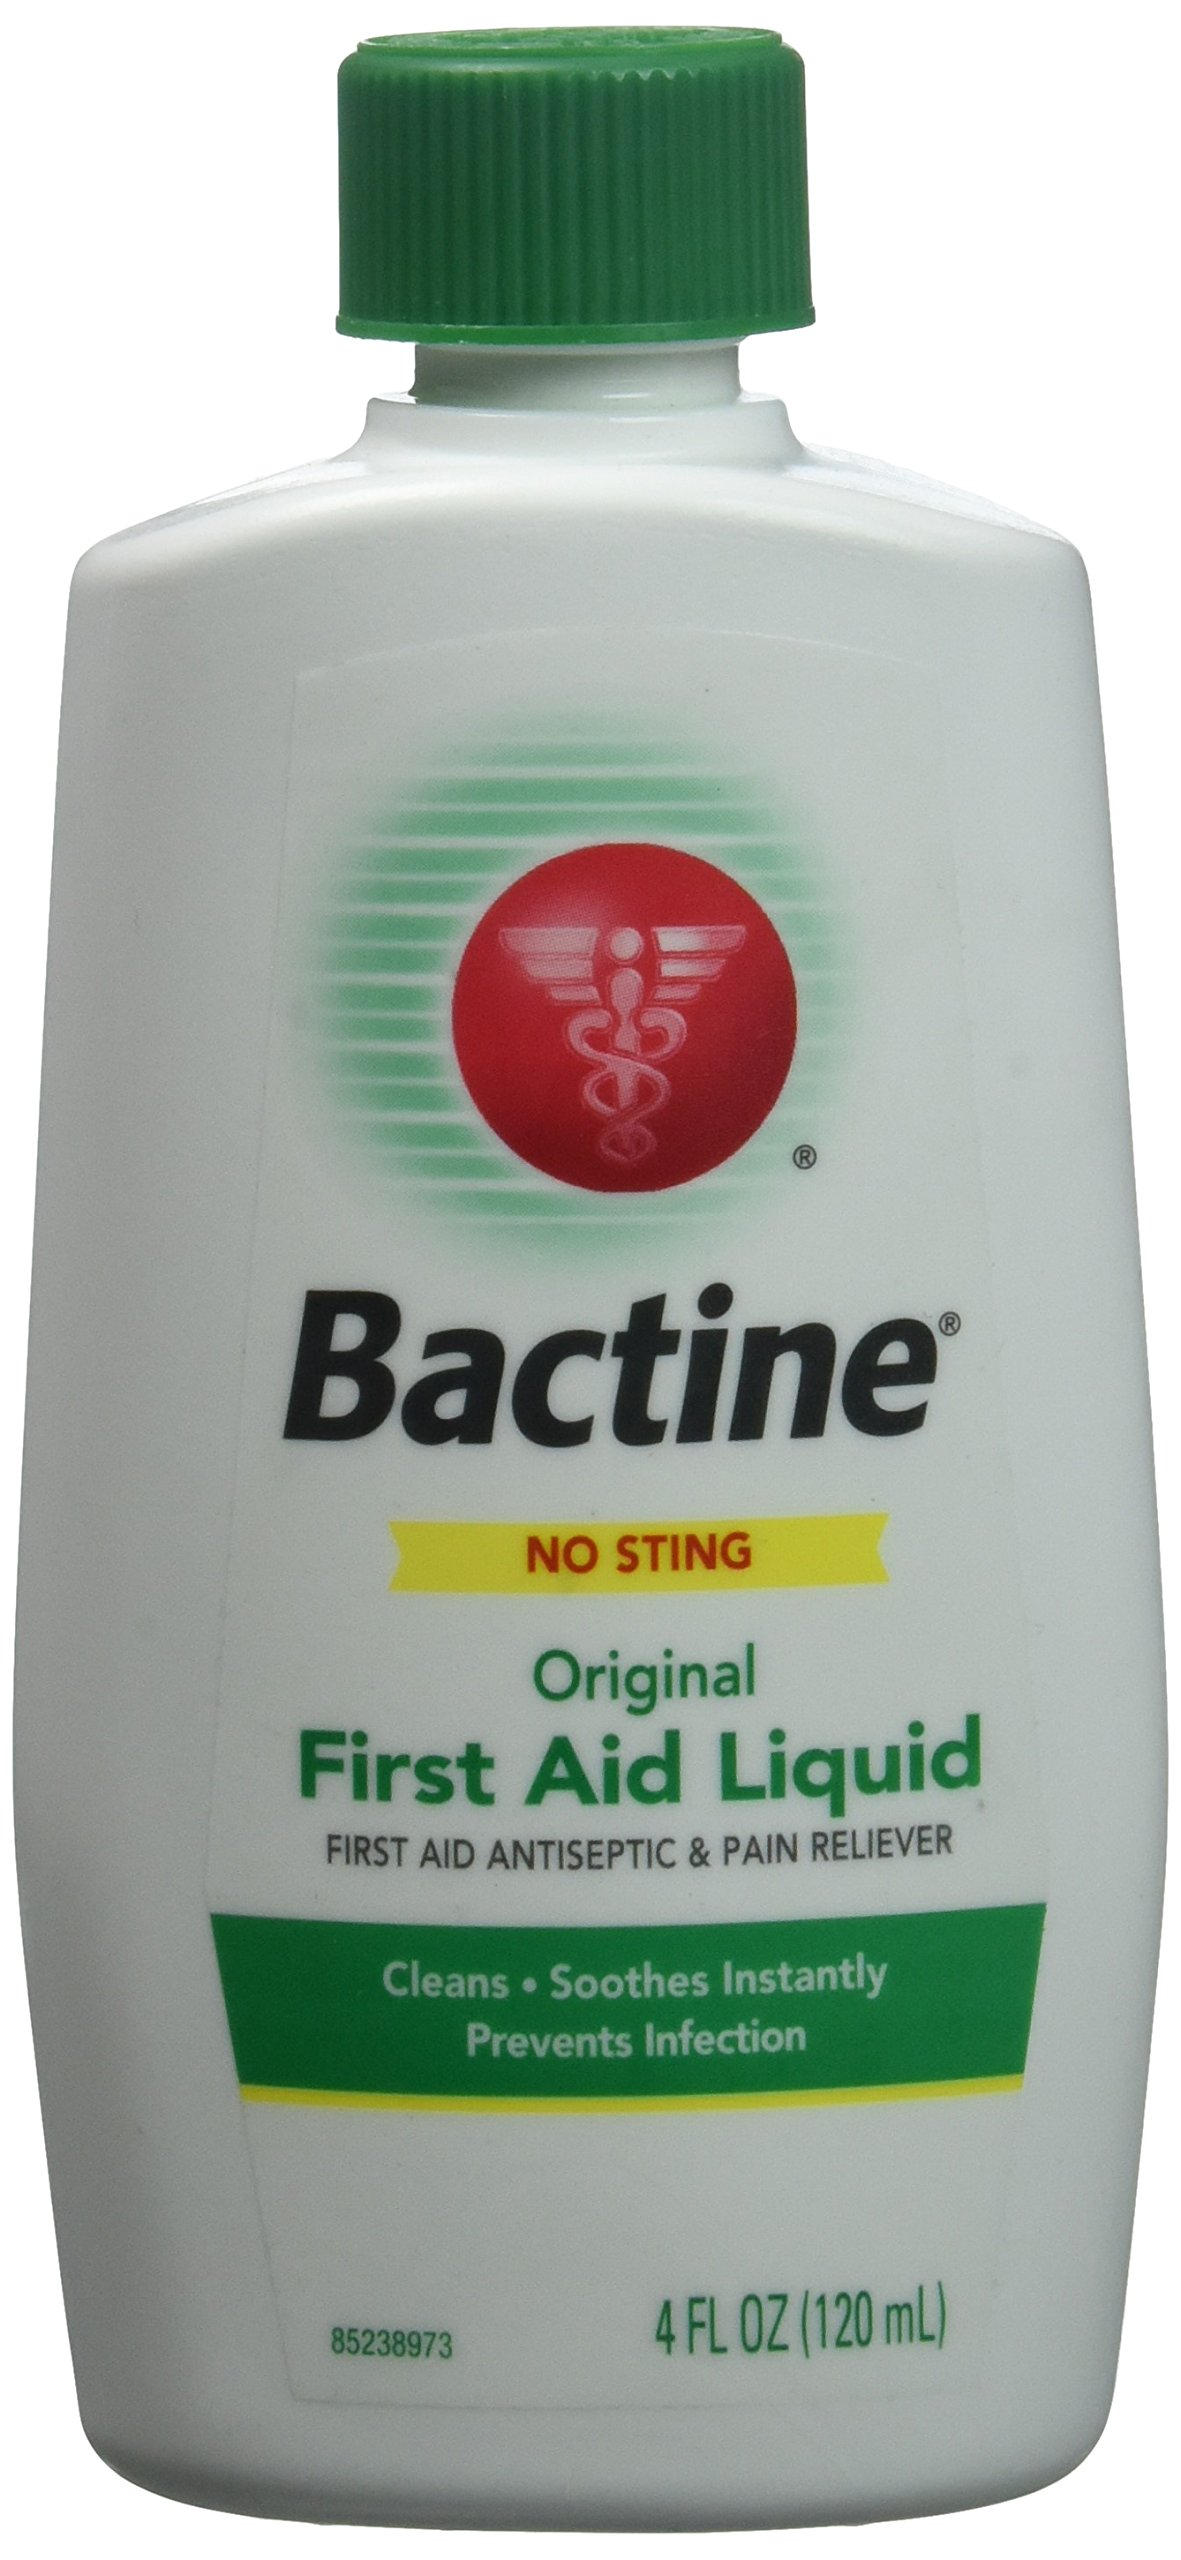 Bactine Original First Aid Liquid, 4 Fl Oz (Pack of 5) by Bactine